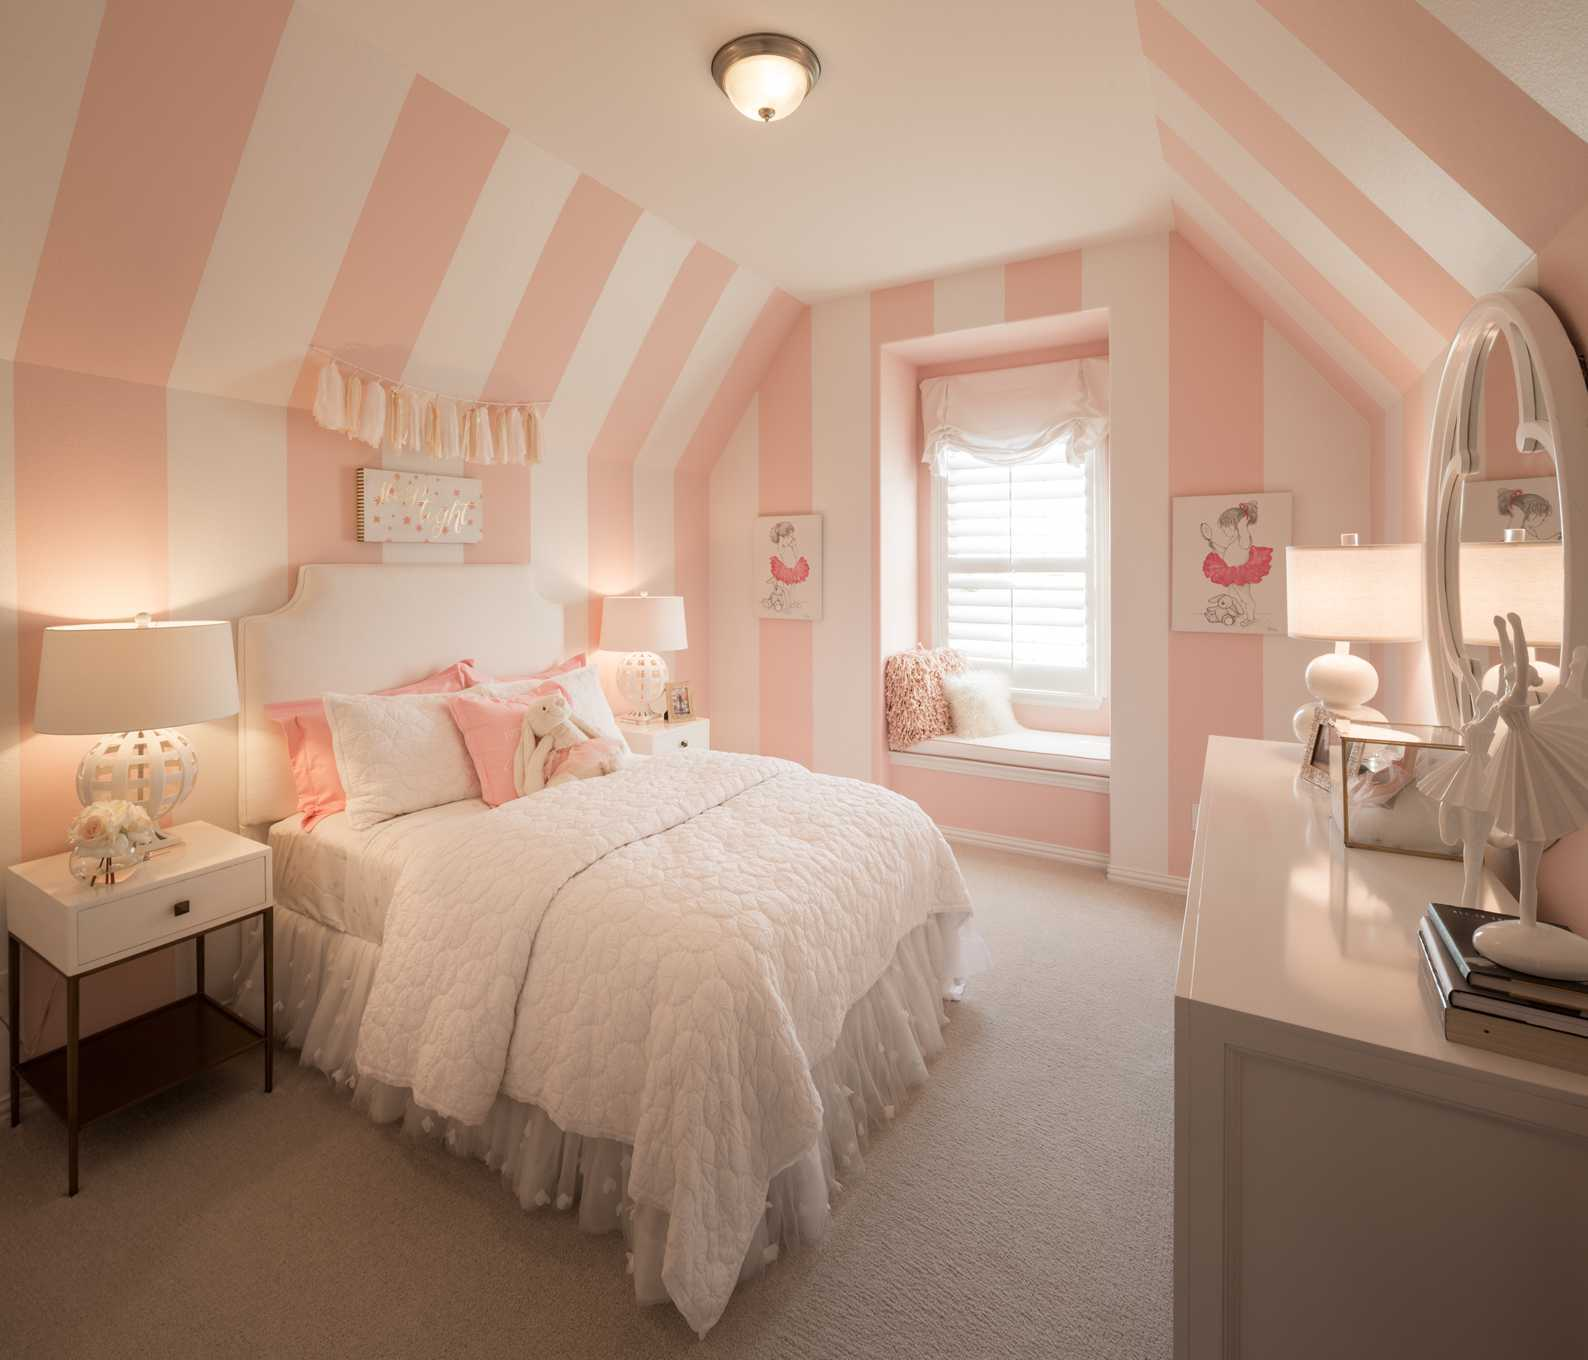 Bedroom featured in the Plan 267 By Highland Homes in Dallas, TX